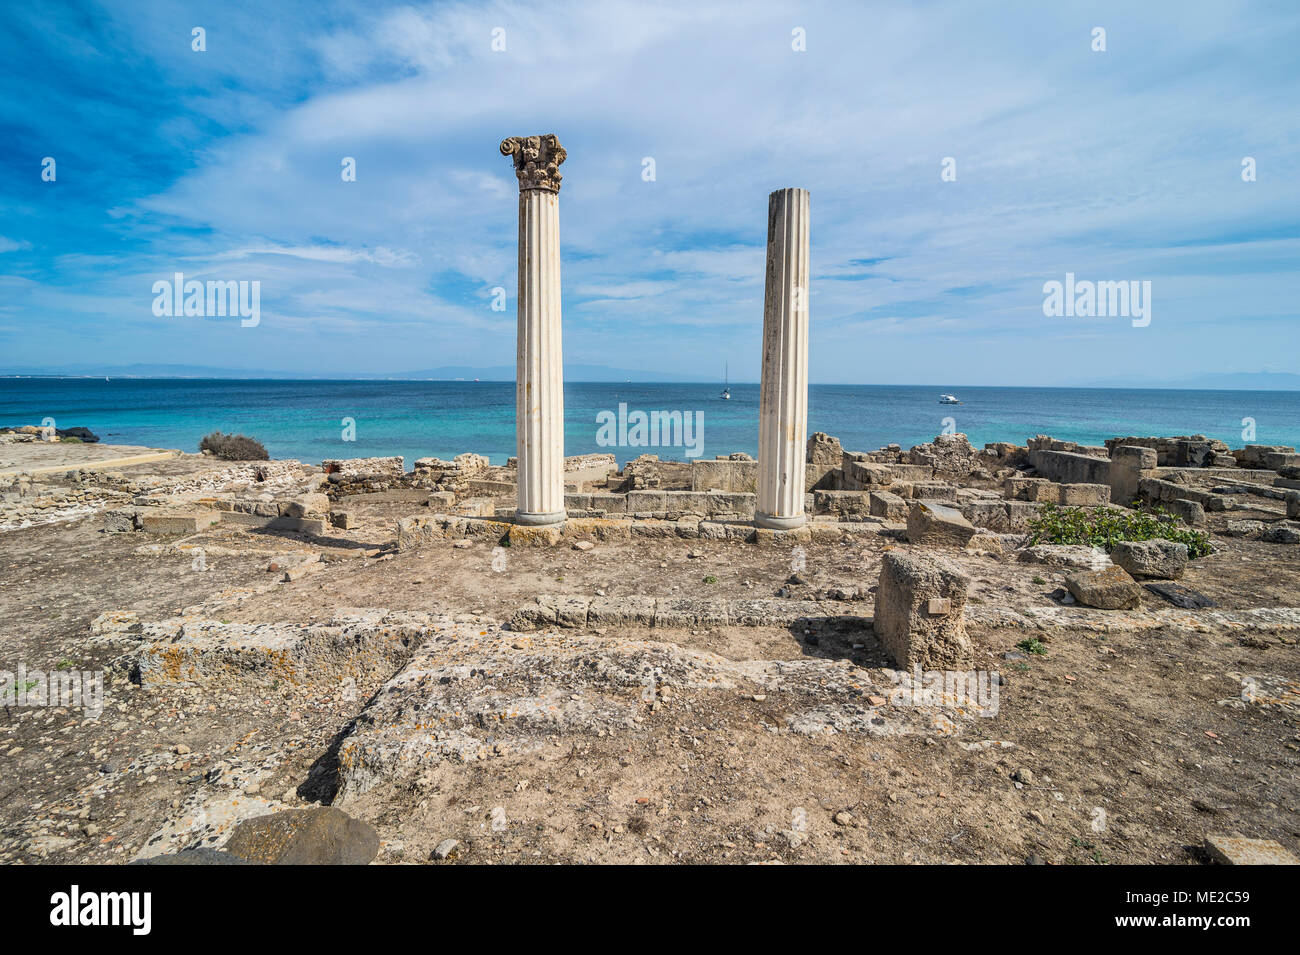 Archeological sight Tharros, Sardinia, Italy - Stock Image